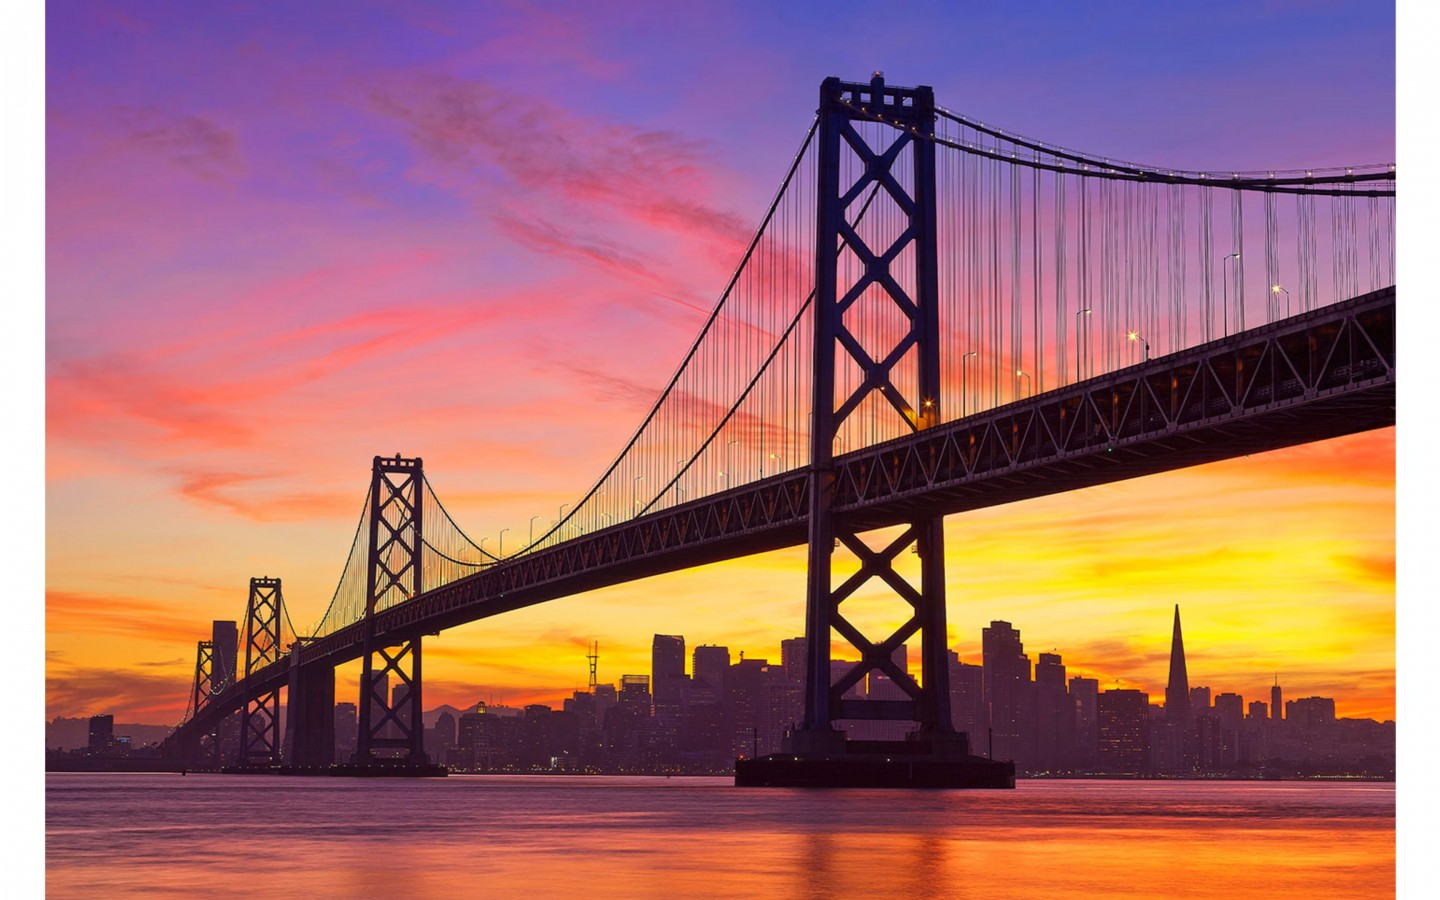 Amazing Sunrise 4K San Francisco Wallpaper 4K Wallpaper 1440x900